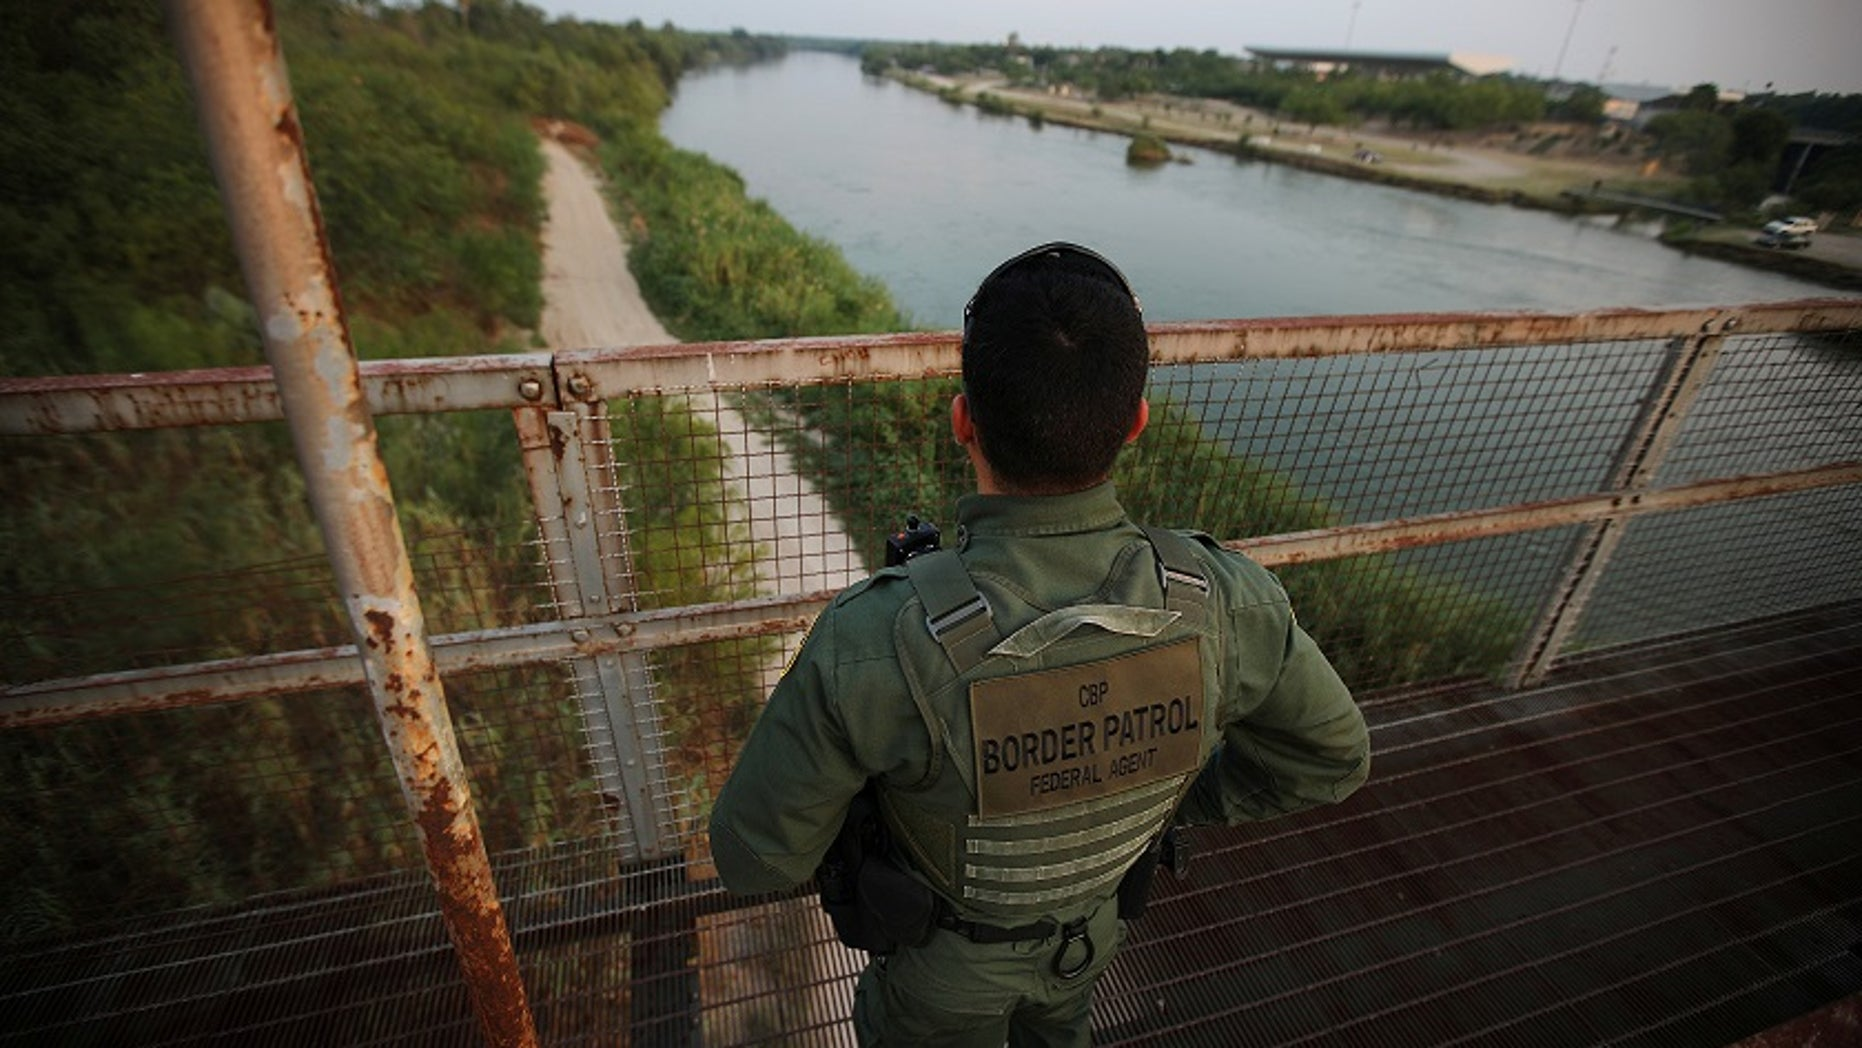 A U.S. Border Patrol agent looks over the Rio Grande River at the border between the U.S. and Mexico in Roma, Texas.